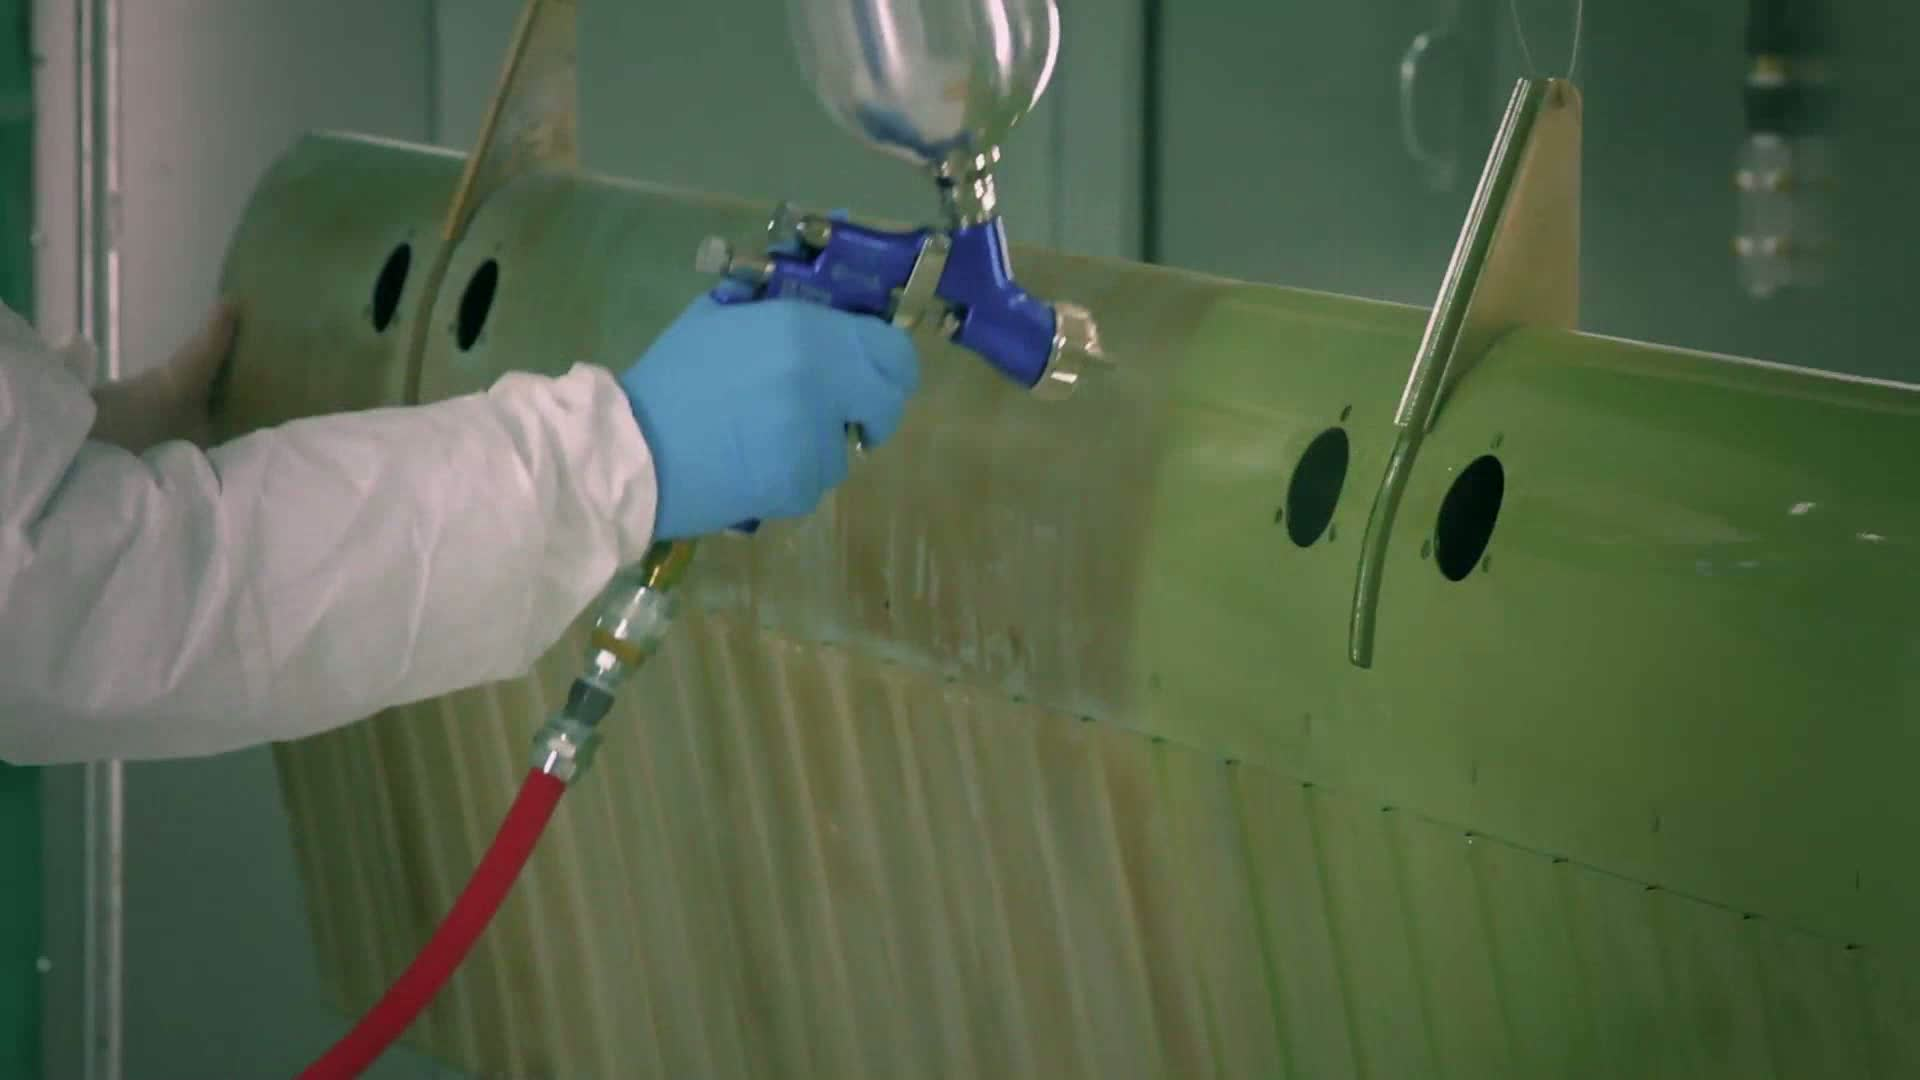 http://s3.amazonaws.com/fscj-news/videos/7452/aircraft_coating_technician_0.jpg